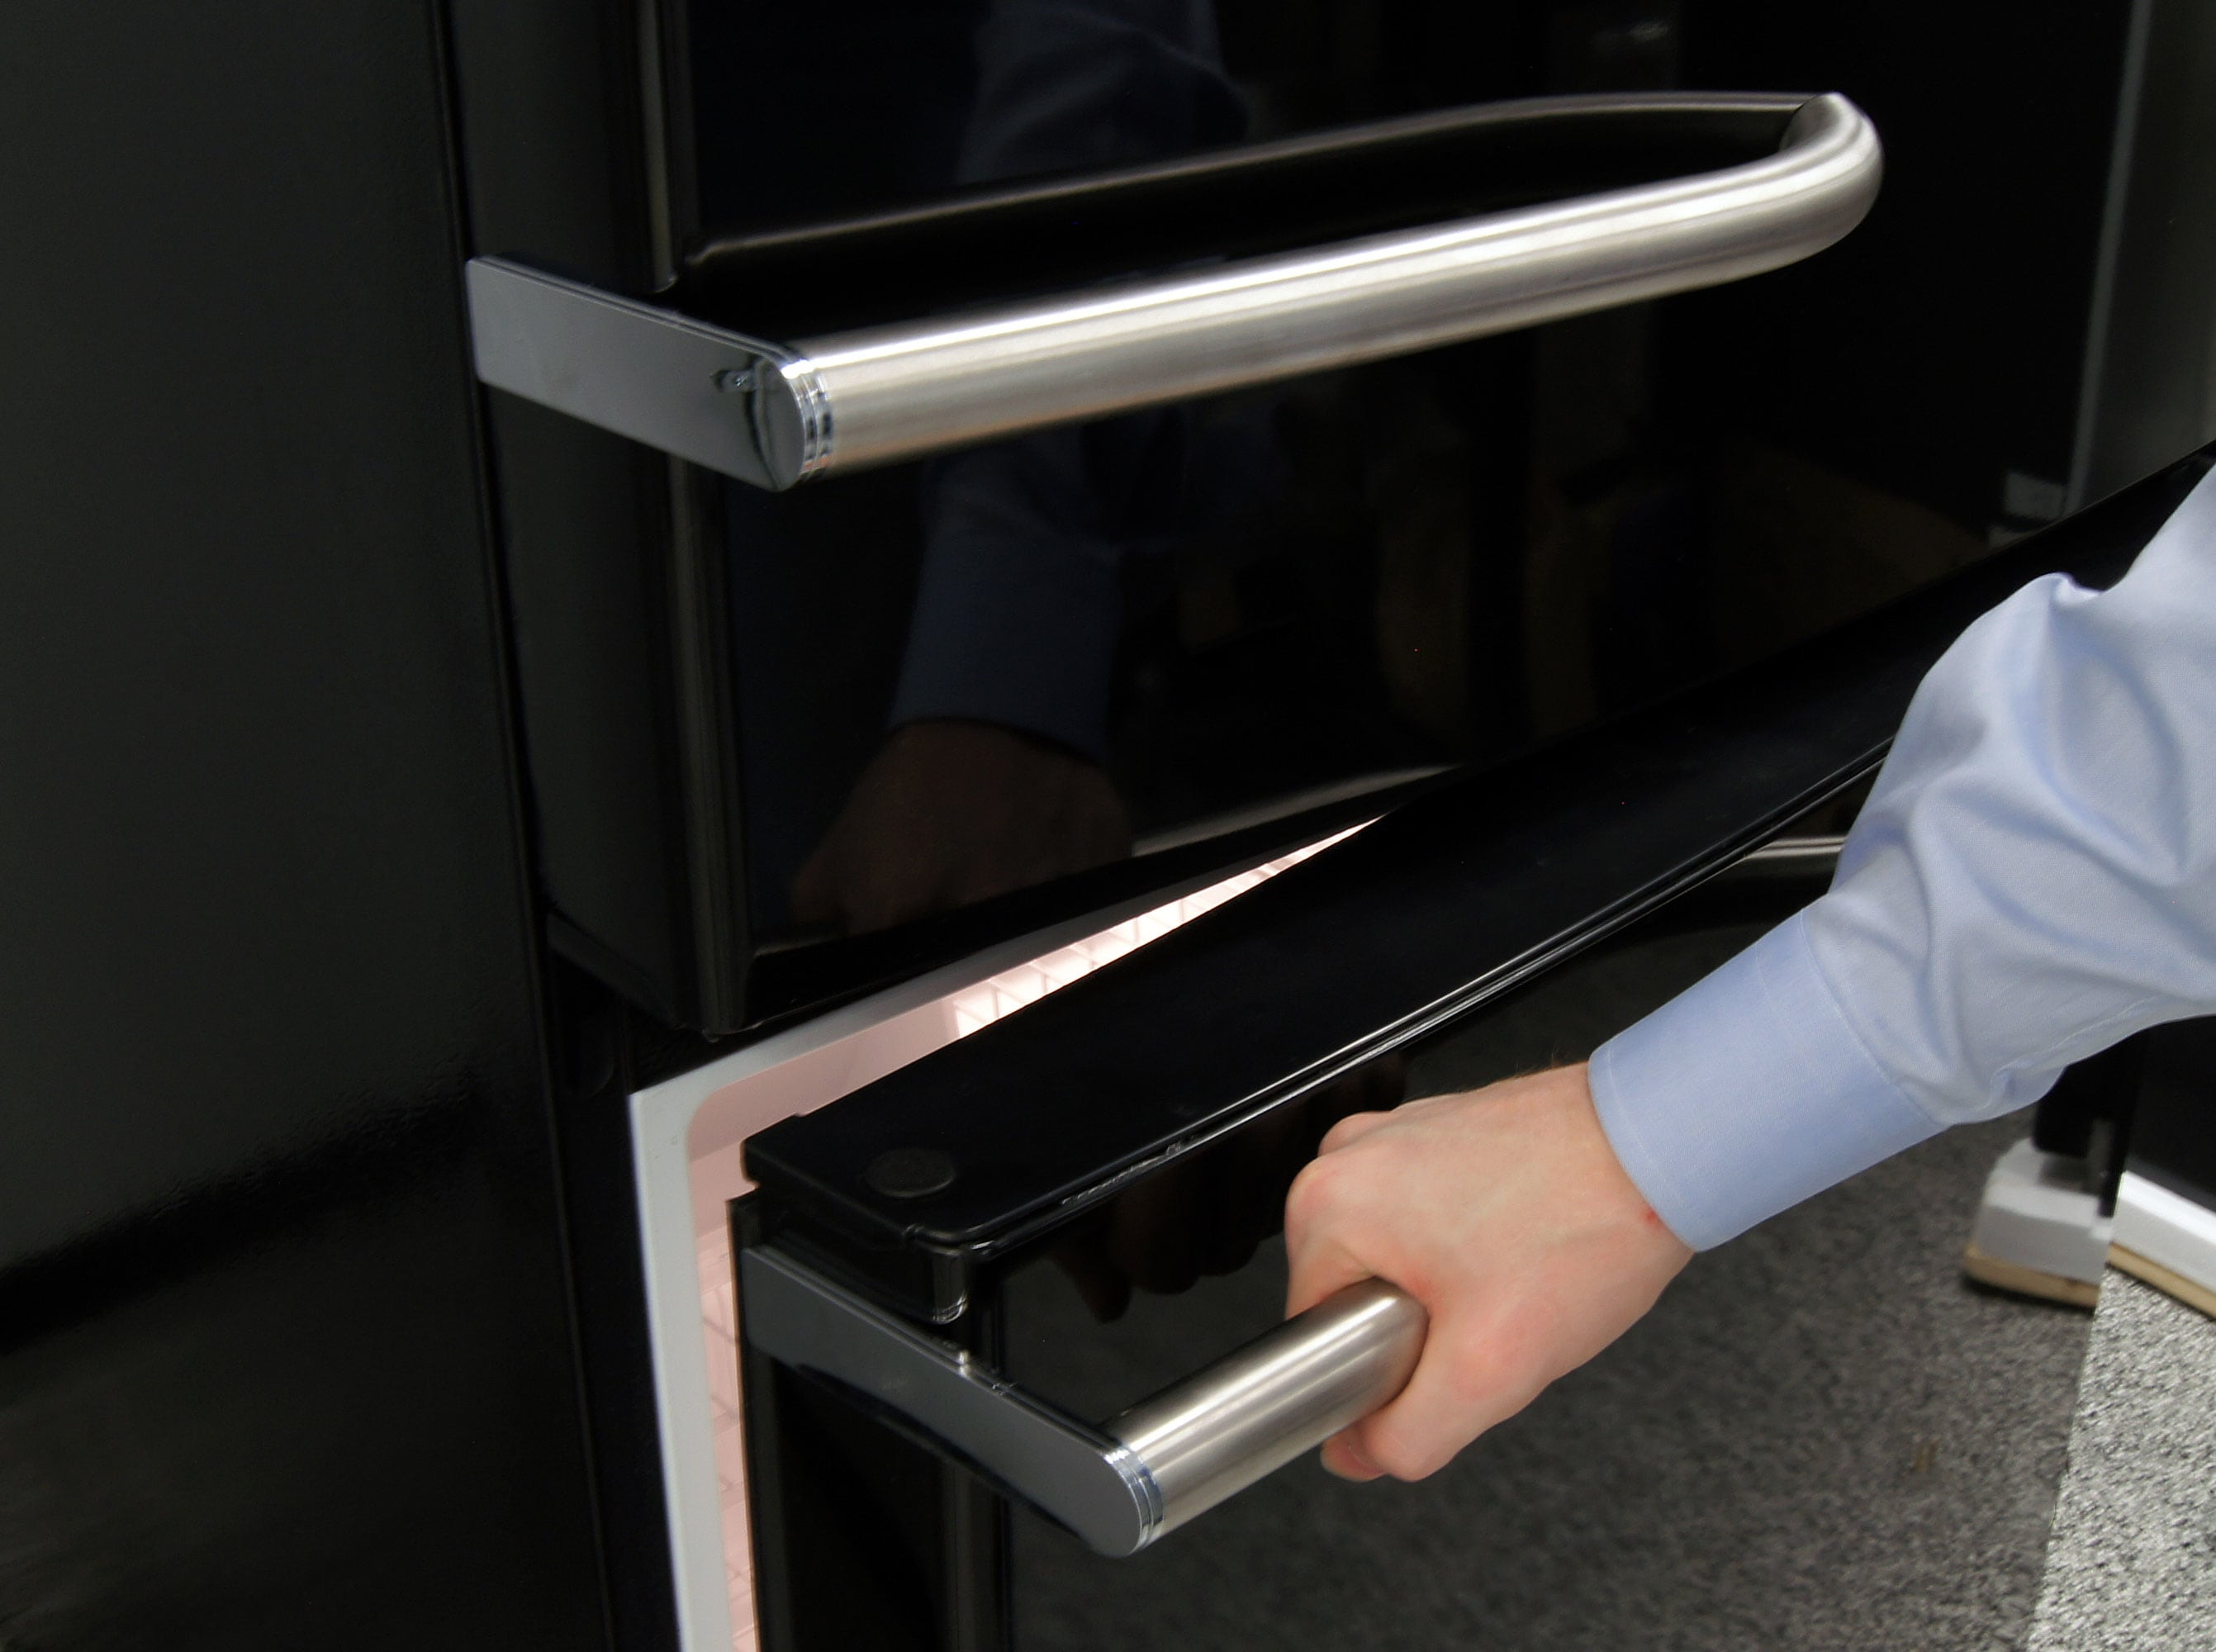 Horizontal handles add a surprising amount to the GE Artistry ABE20EGEBS's visual aesthetic, and are high enough that opening the door shouldn't force you to stoop.